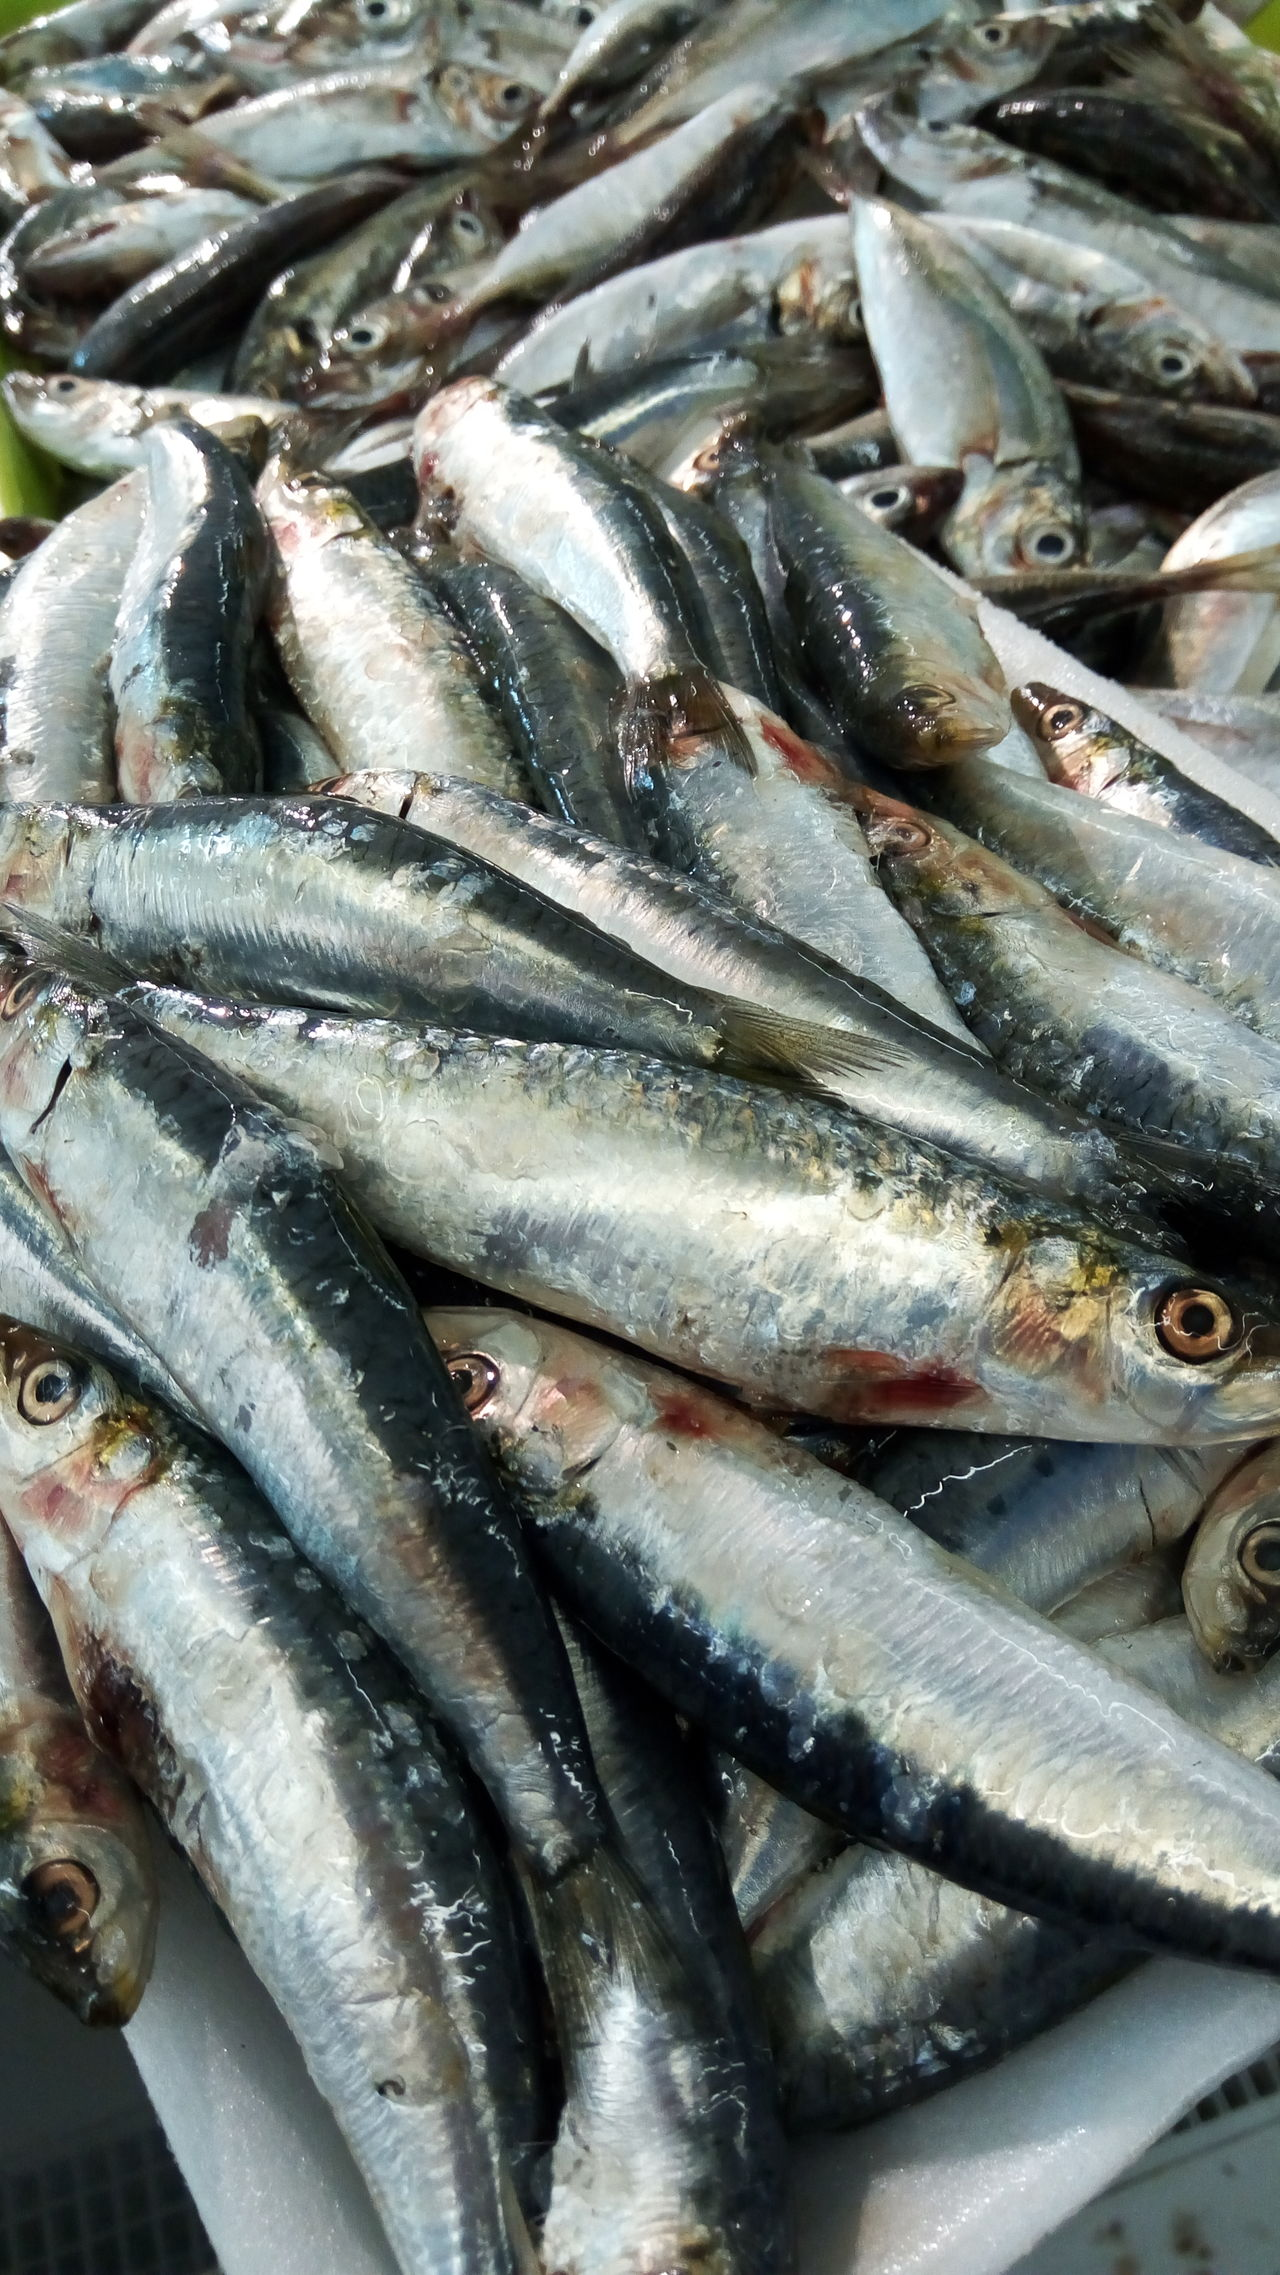 Abundance Backgrounds Choice Close-up Dead Animal Fish Fish Market Fishing For Sale Fresh Full Frame Galicia, Spain Group Of Objects Heap Large Group Of Objects Market Market Stall No People Retail  Sale Sardines Seafood Seafood Still Life Variation